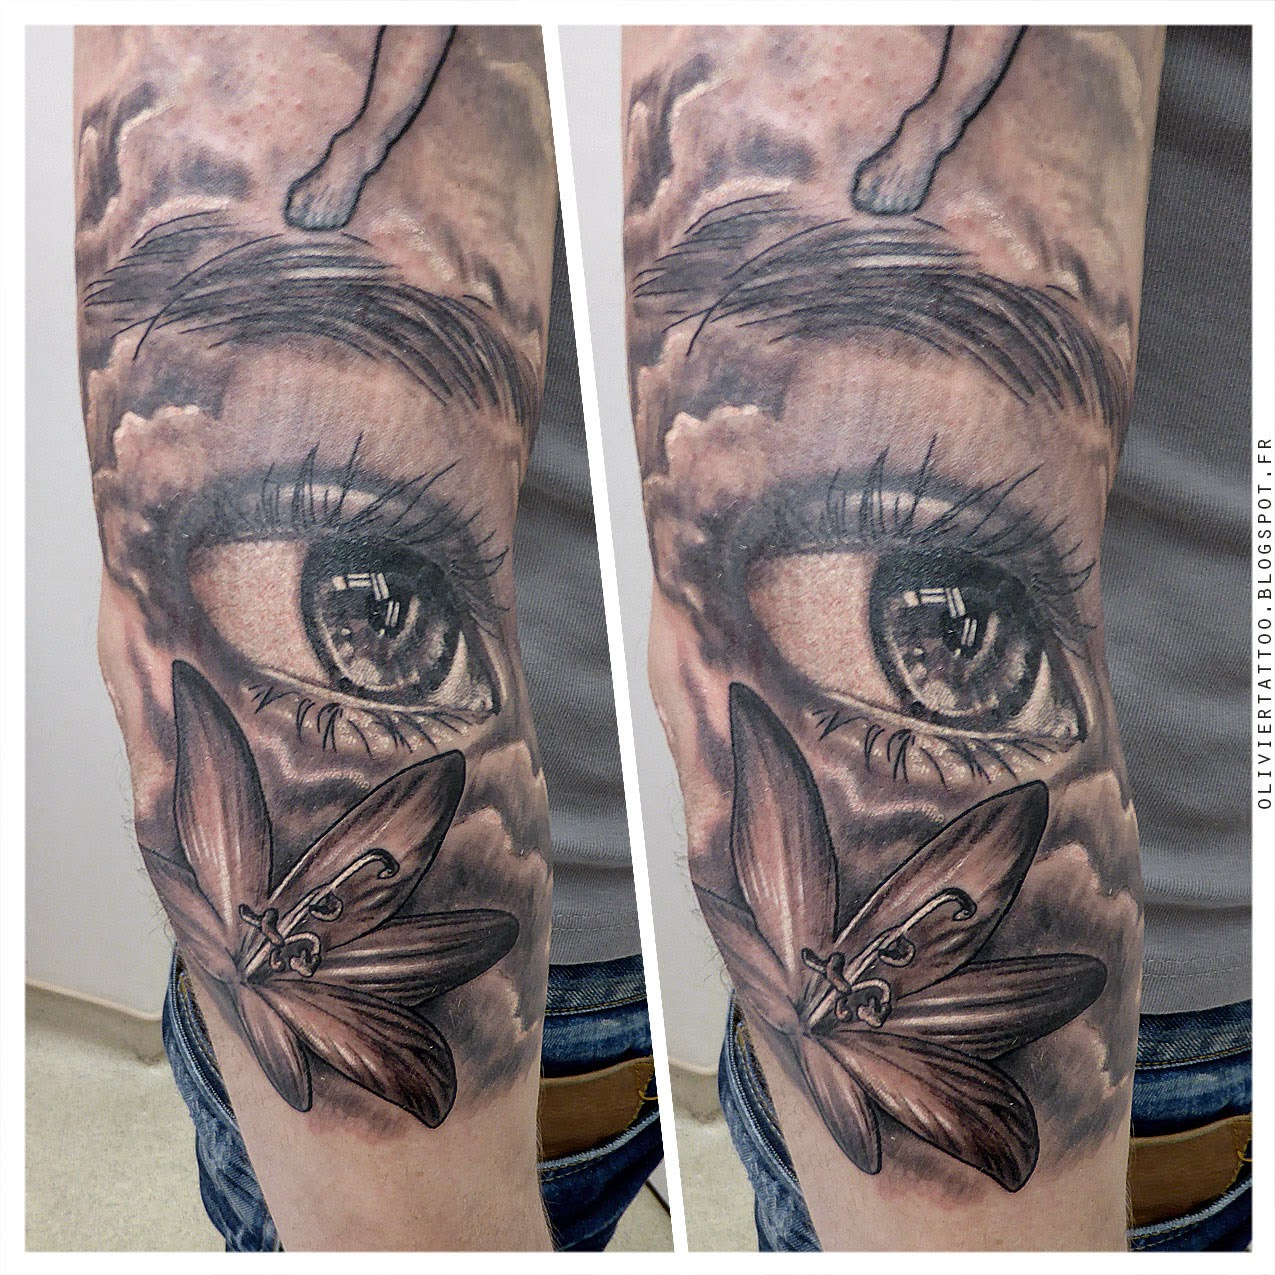 olivier-poinsignon-tatouage-realistes-oeil-eye-tattoo-amazing